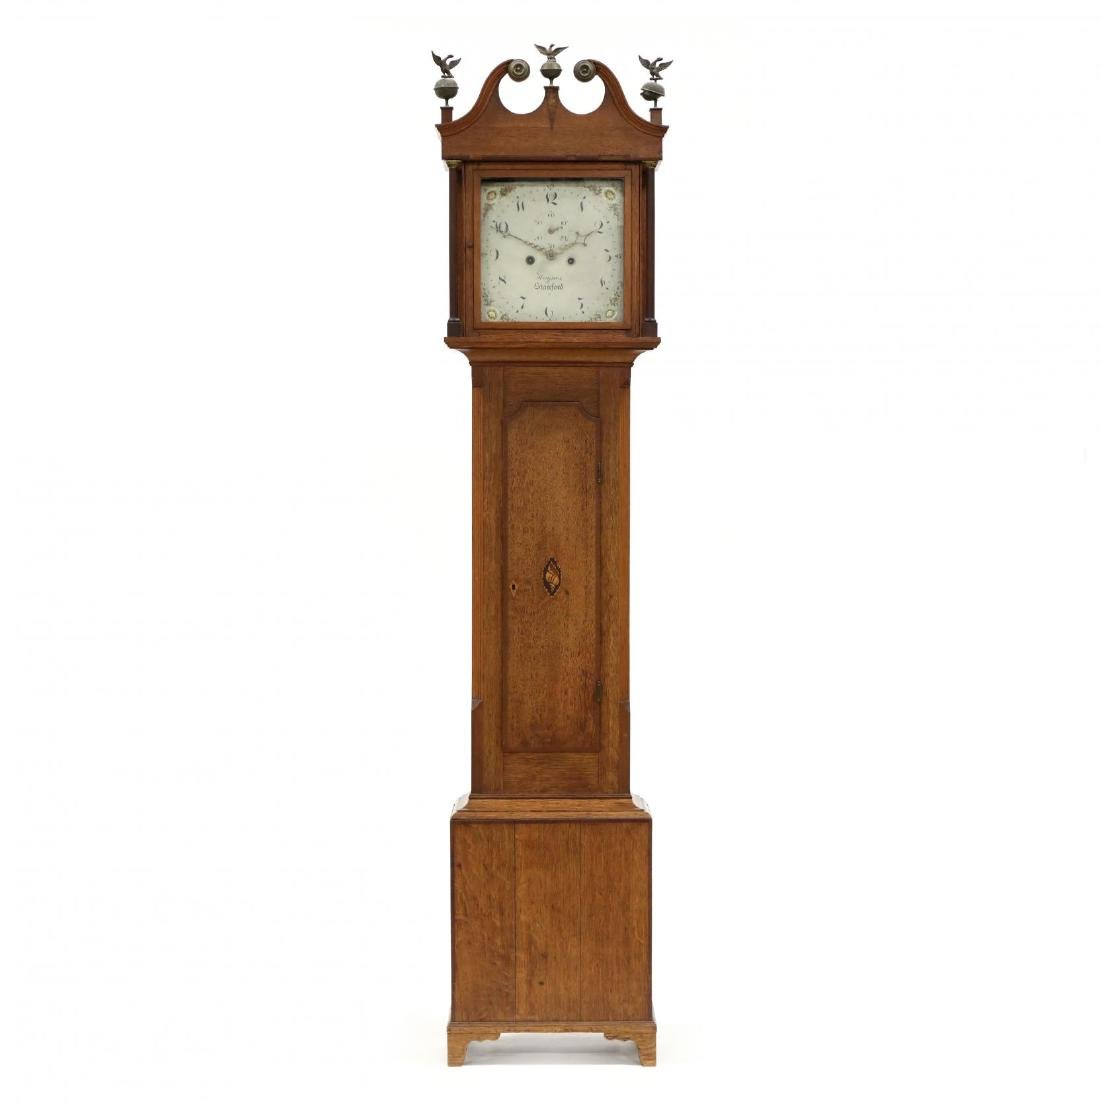 English Inlaid Oak Tall Case Clock, Haynes, Stamford